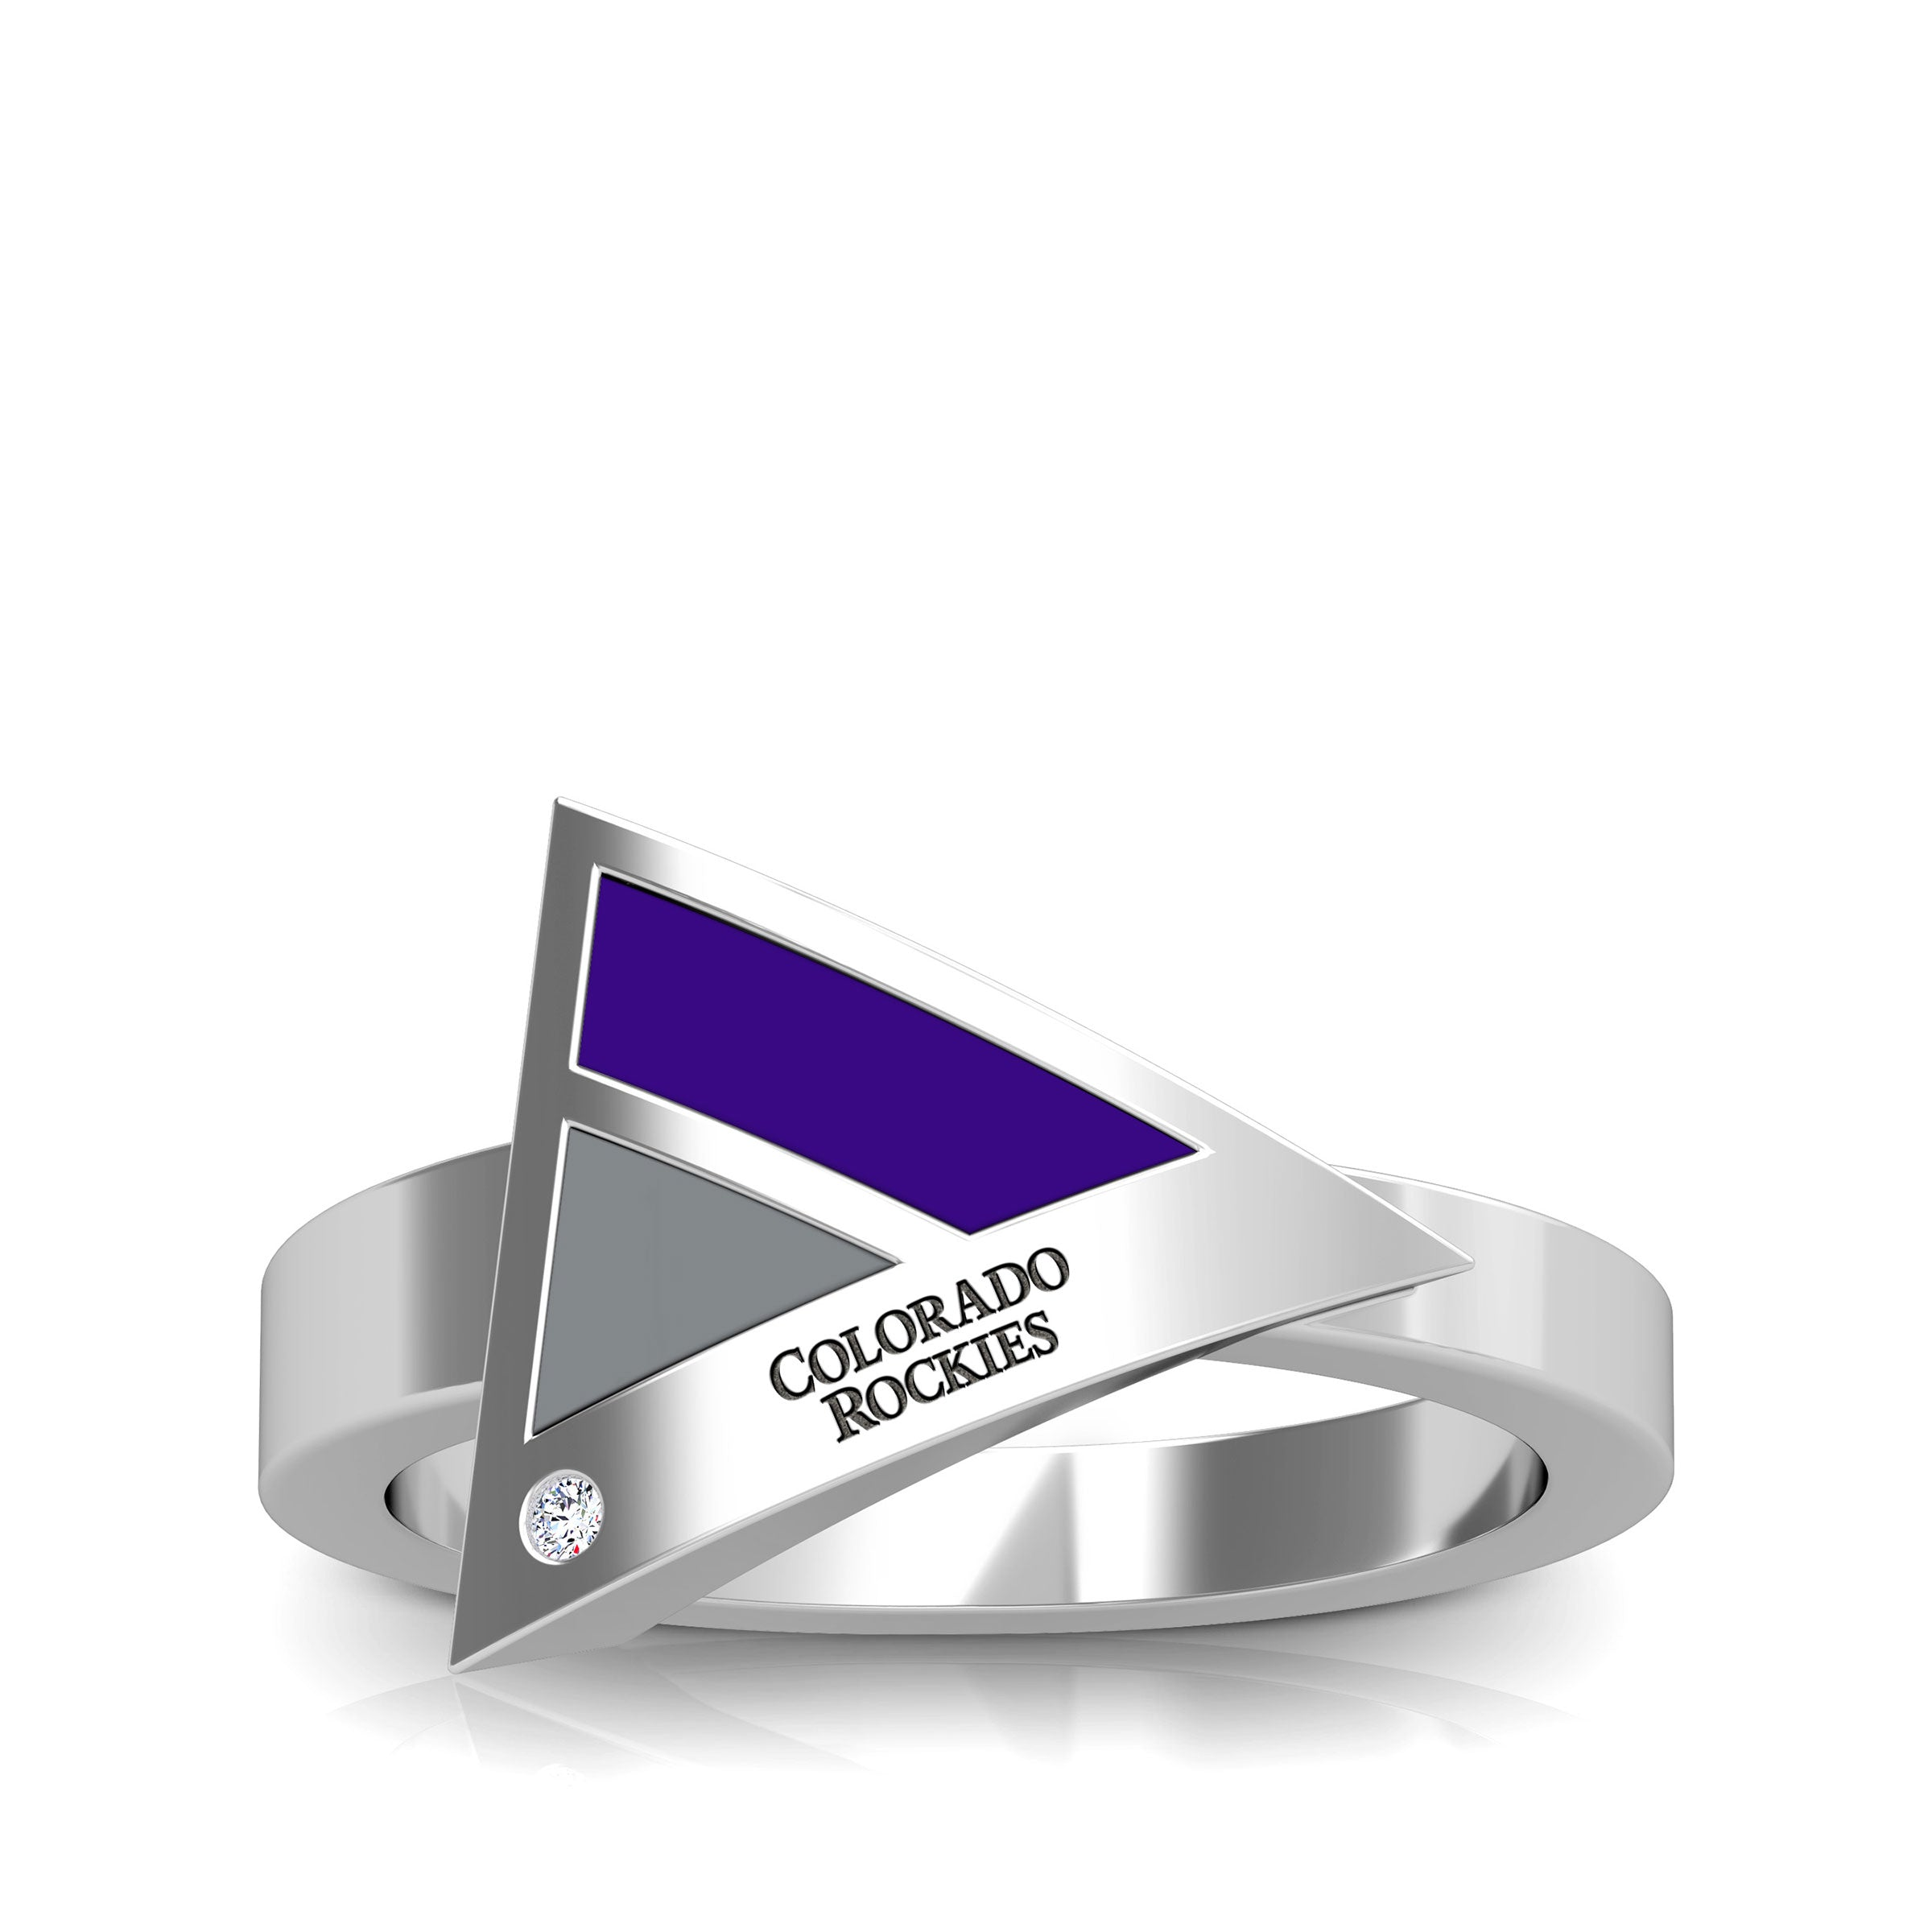 Rockies Engraved Diamond Geometric Ring in Purple and Light Grey Size 9